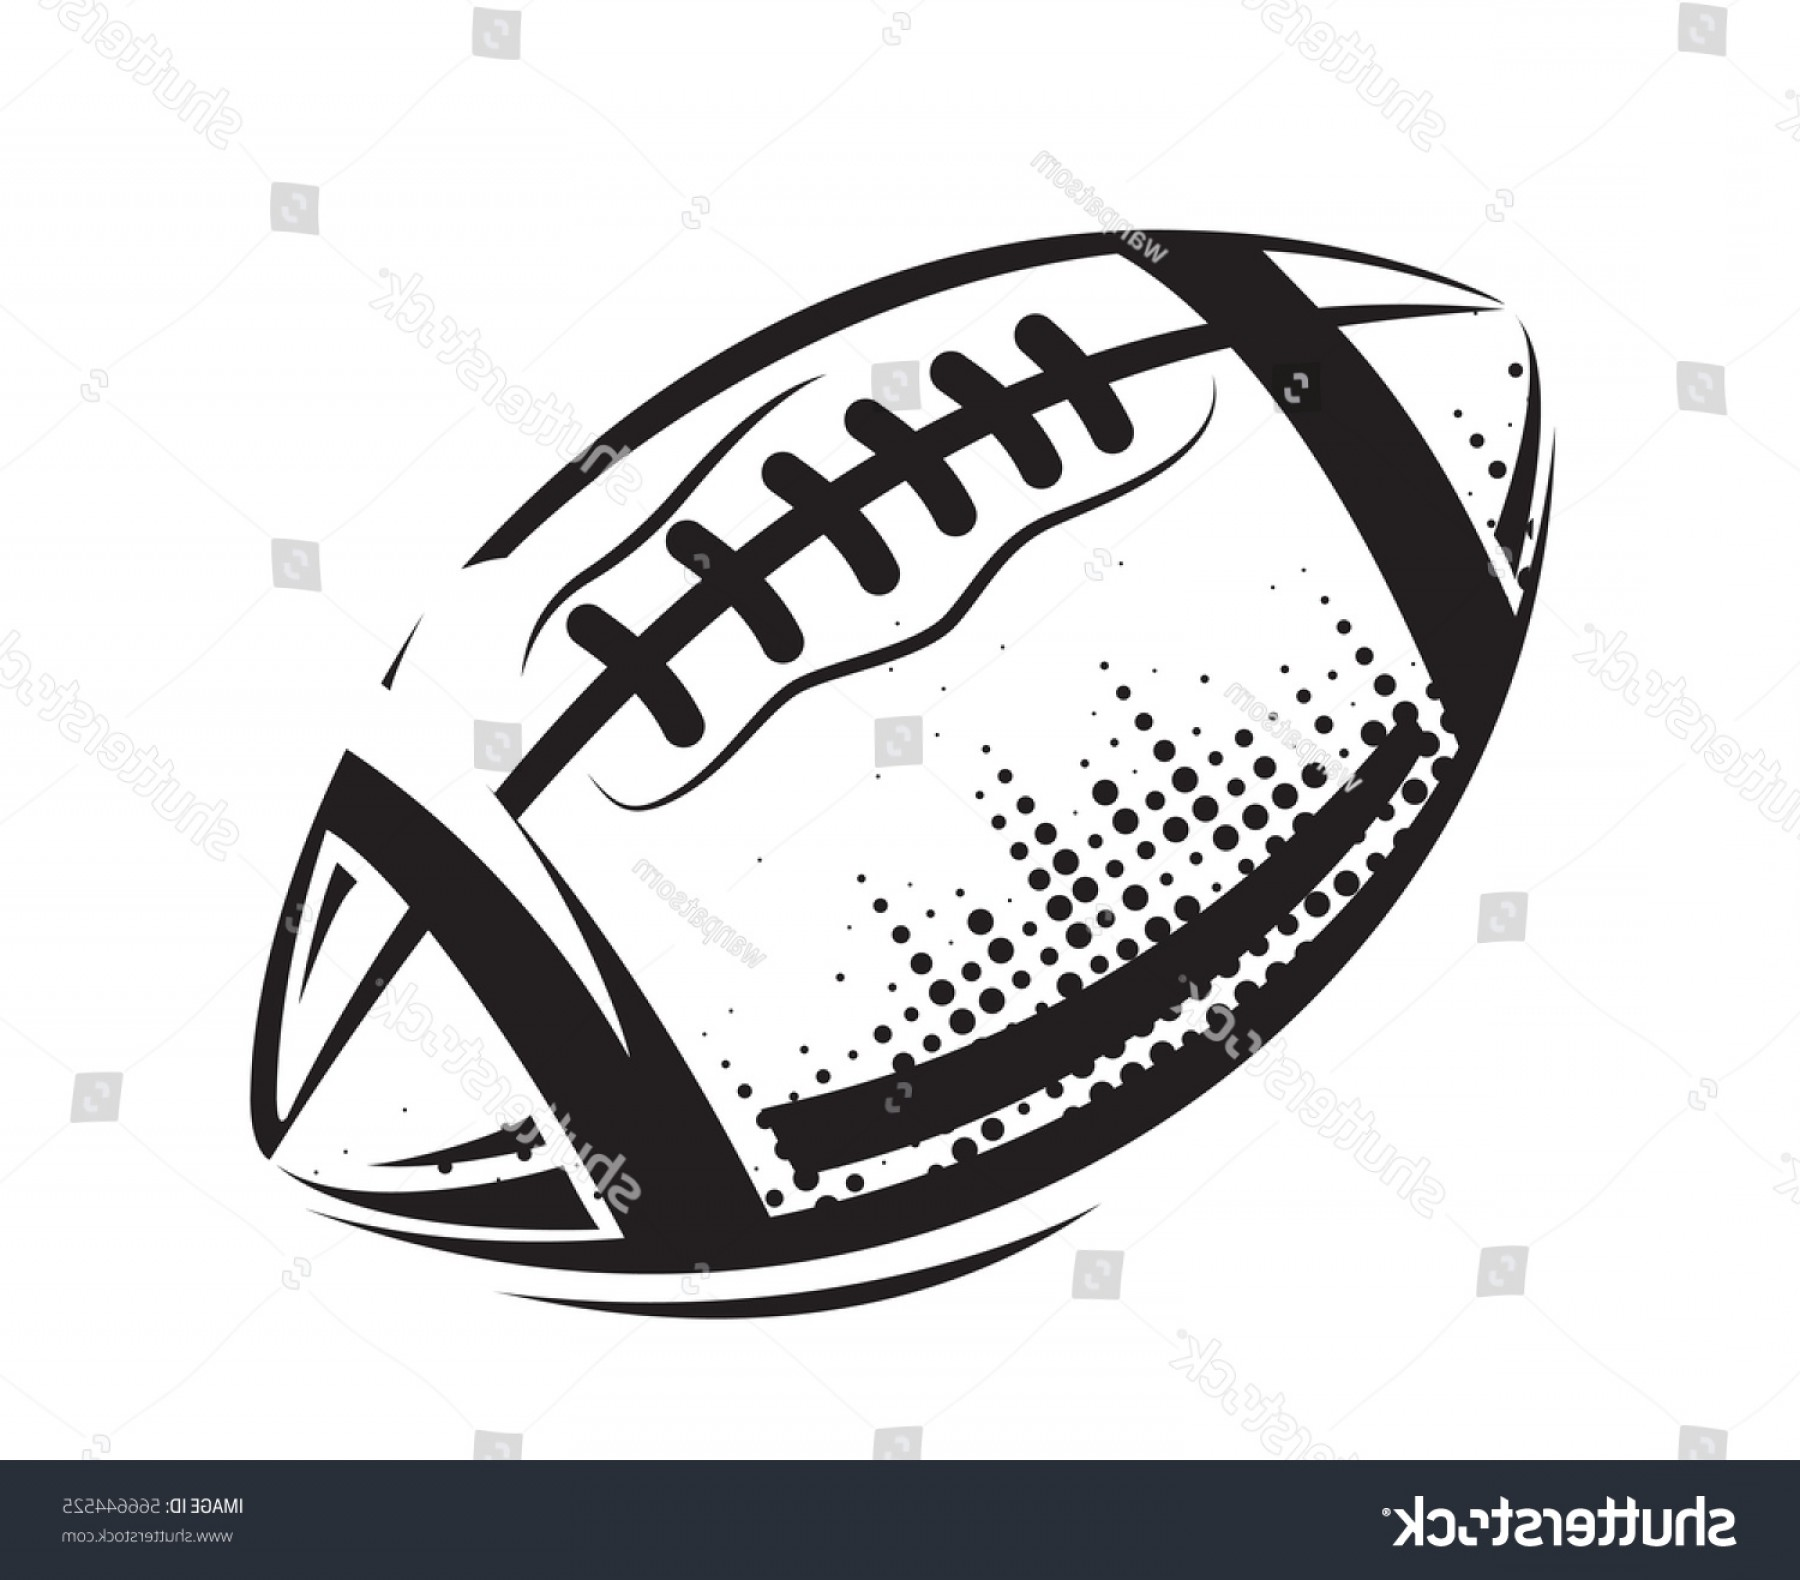 High Res Vector American Football: American Football Icons Ball Isolated On